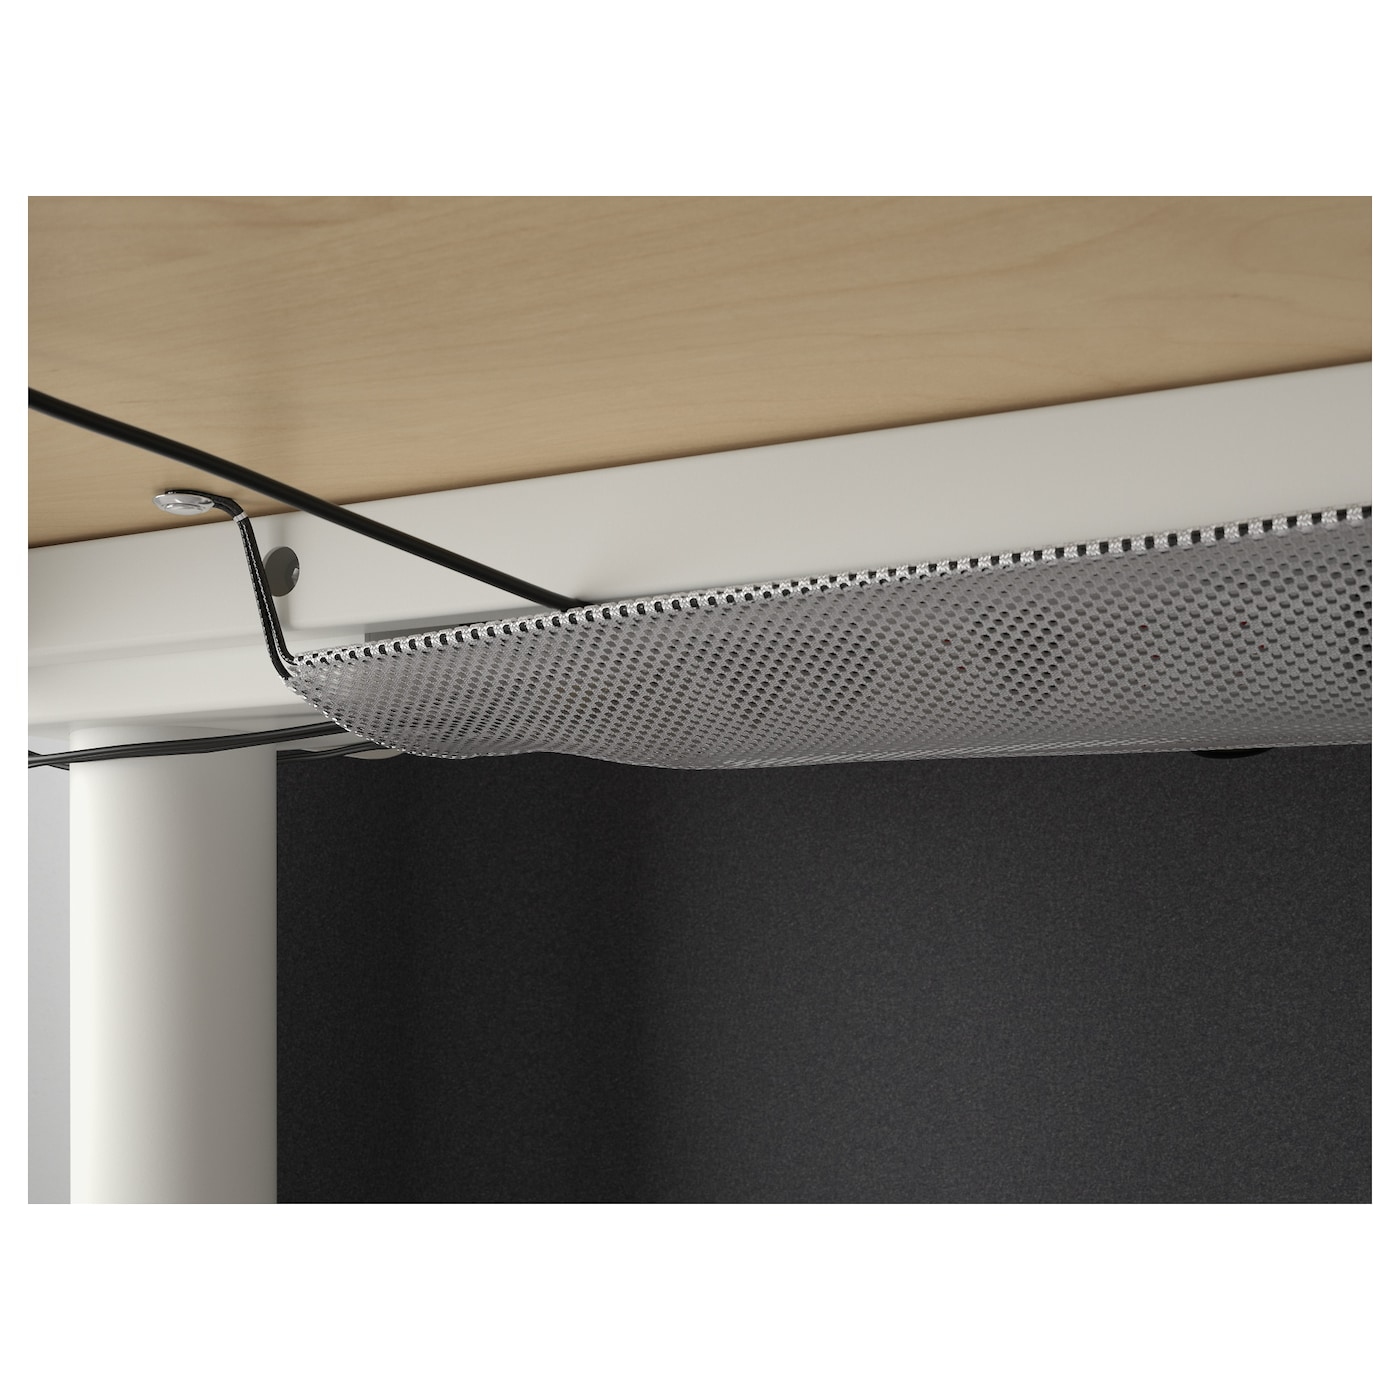 IKEA BEKANT reception desk sit/stand Holds pins; also serves as notice board.